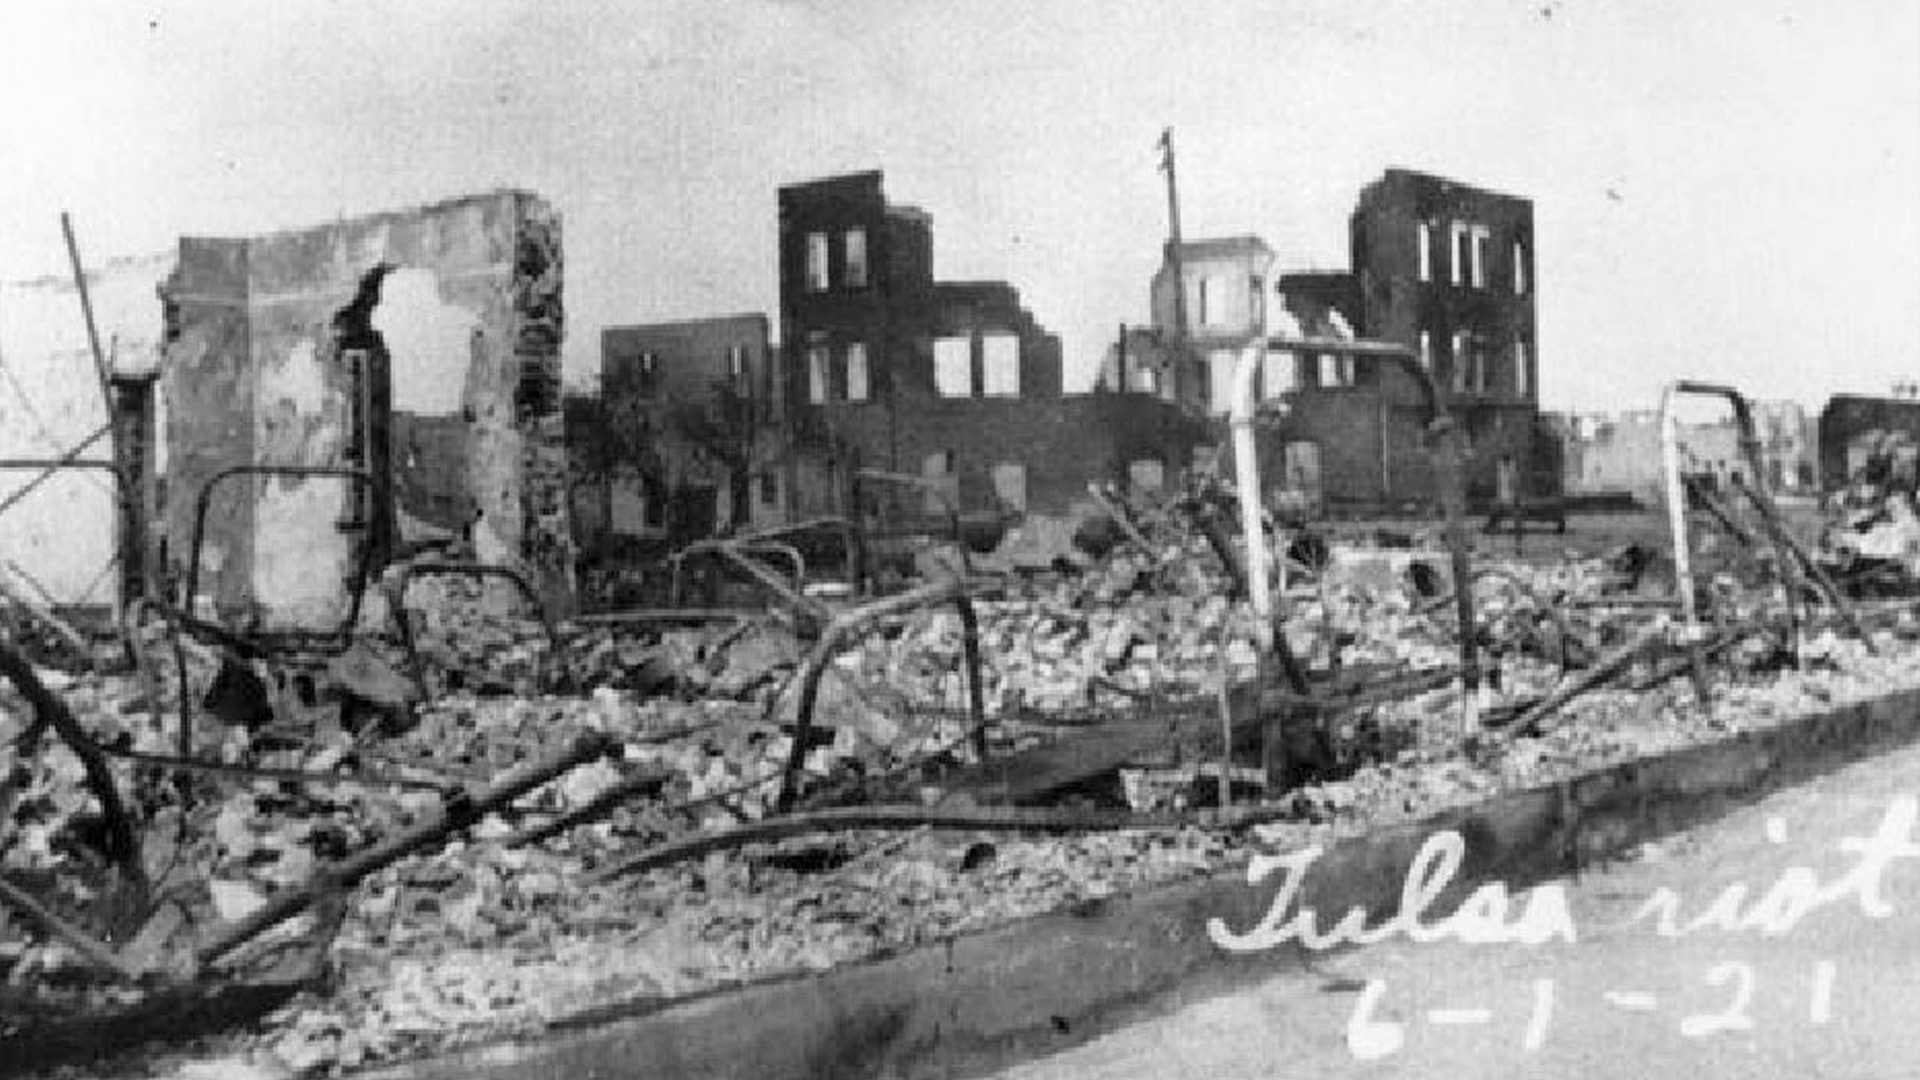 Tulsa Race Massacre